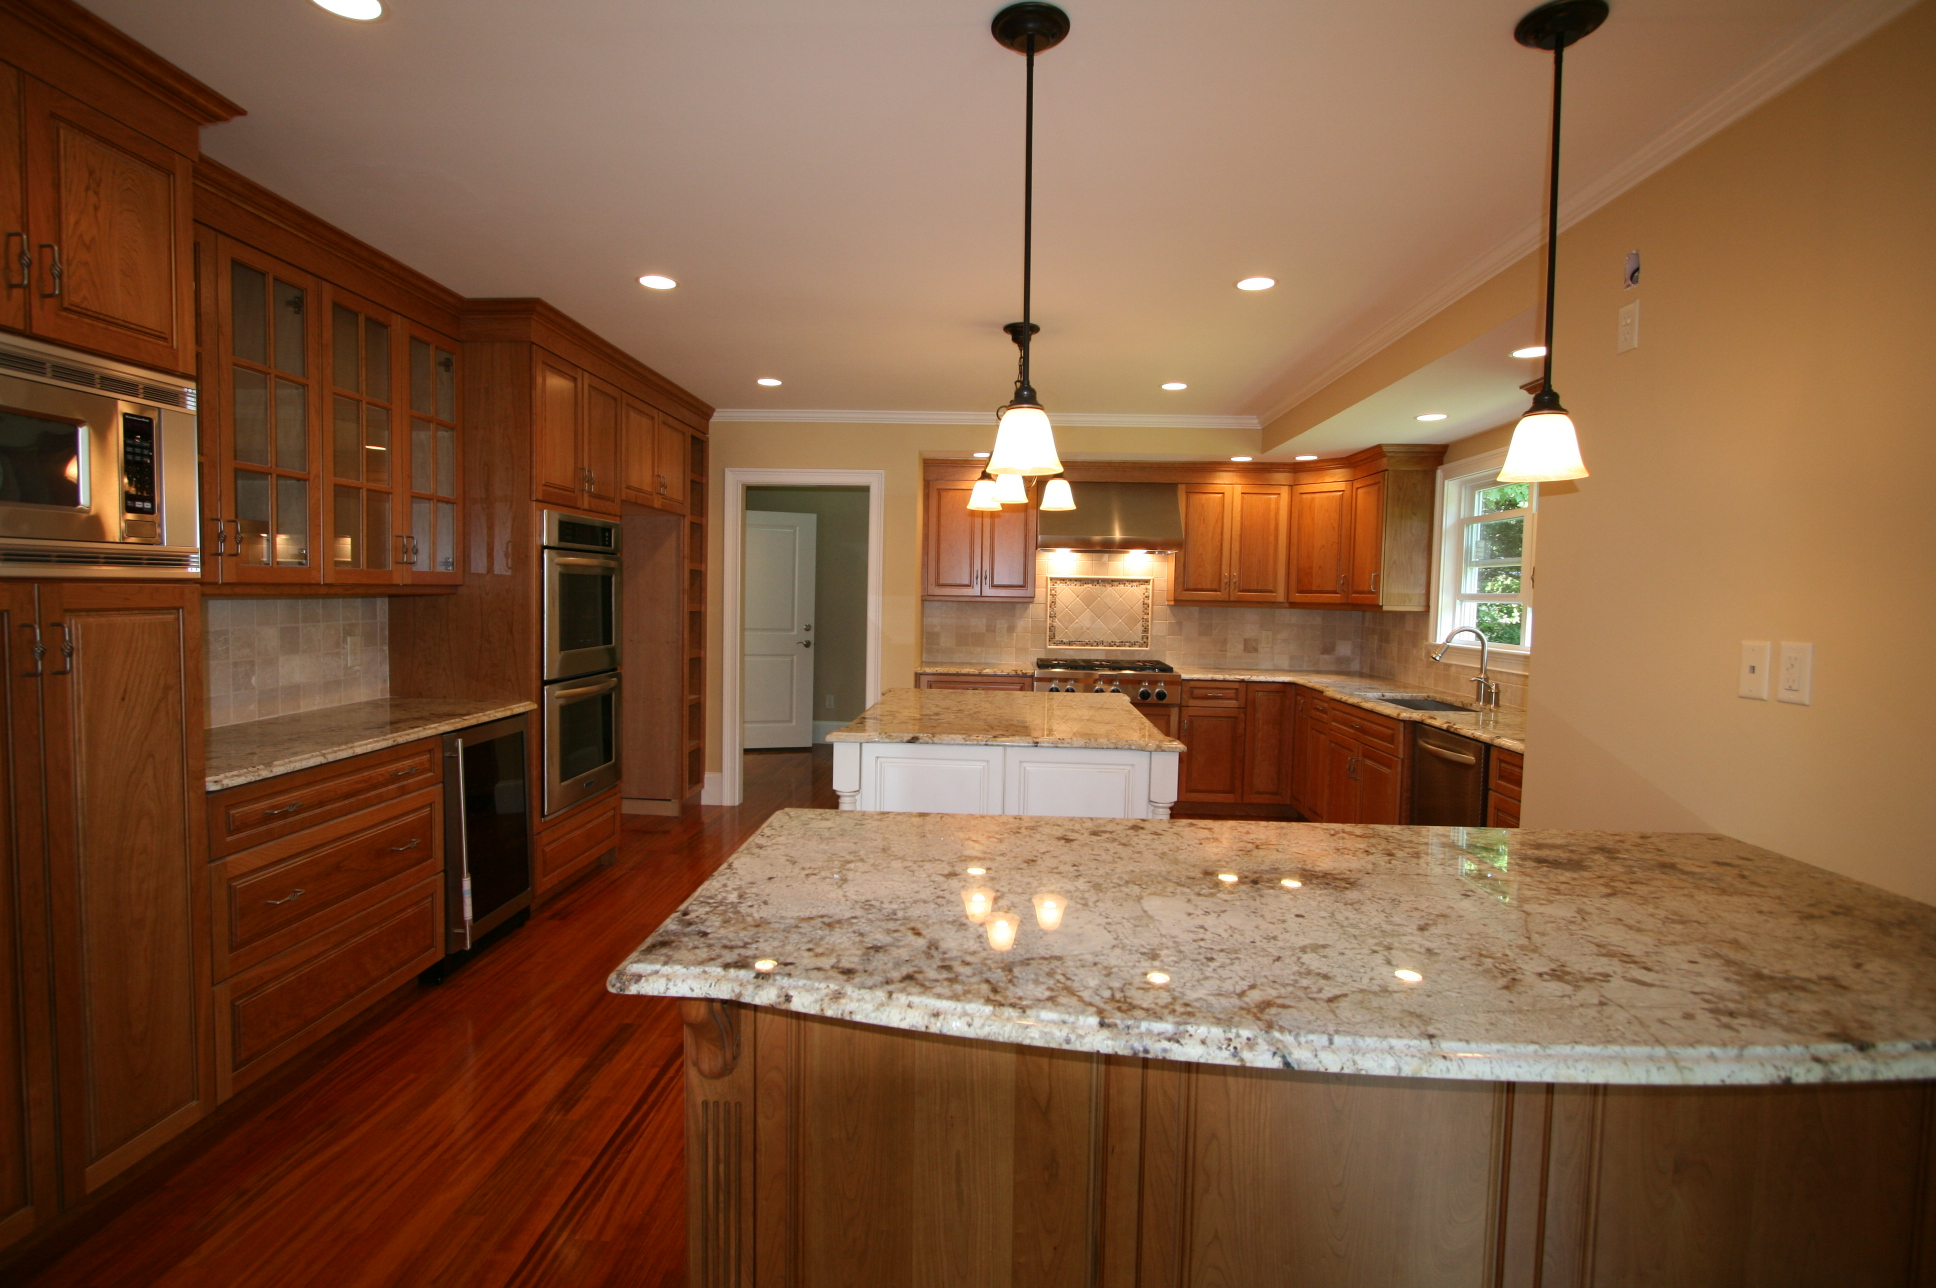 New Construction Ideas For Kitchens